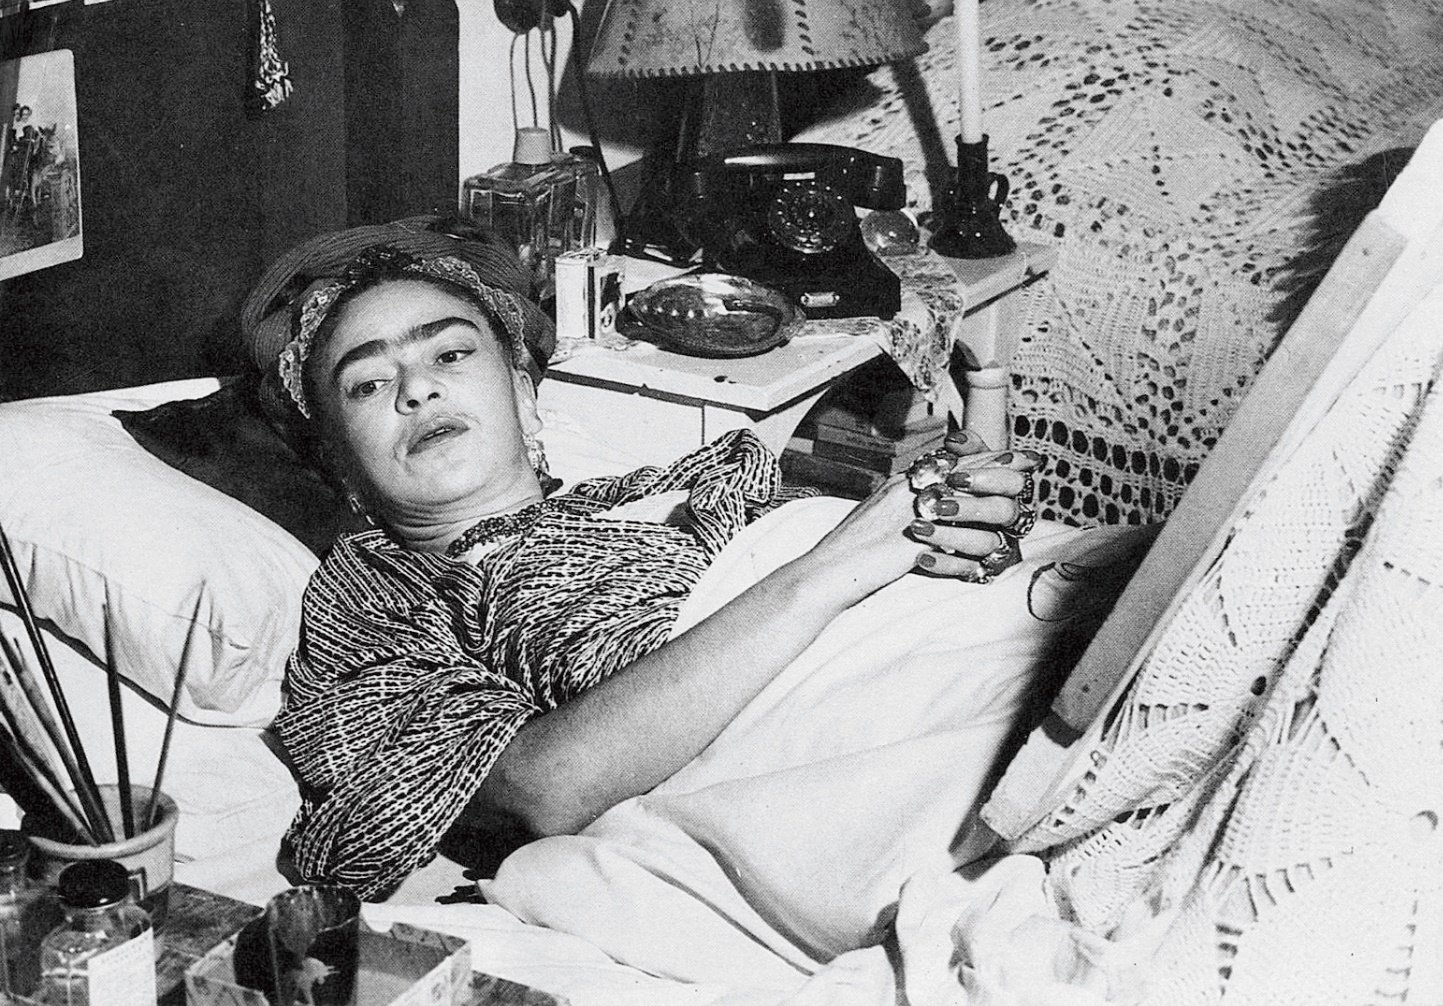 Frida Kahlo: The fatal accident that transformed her life and art